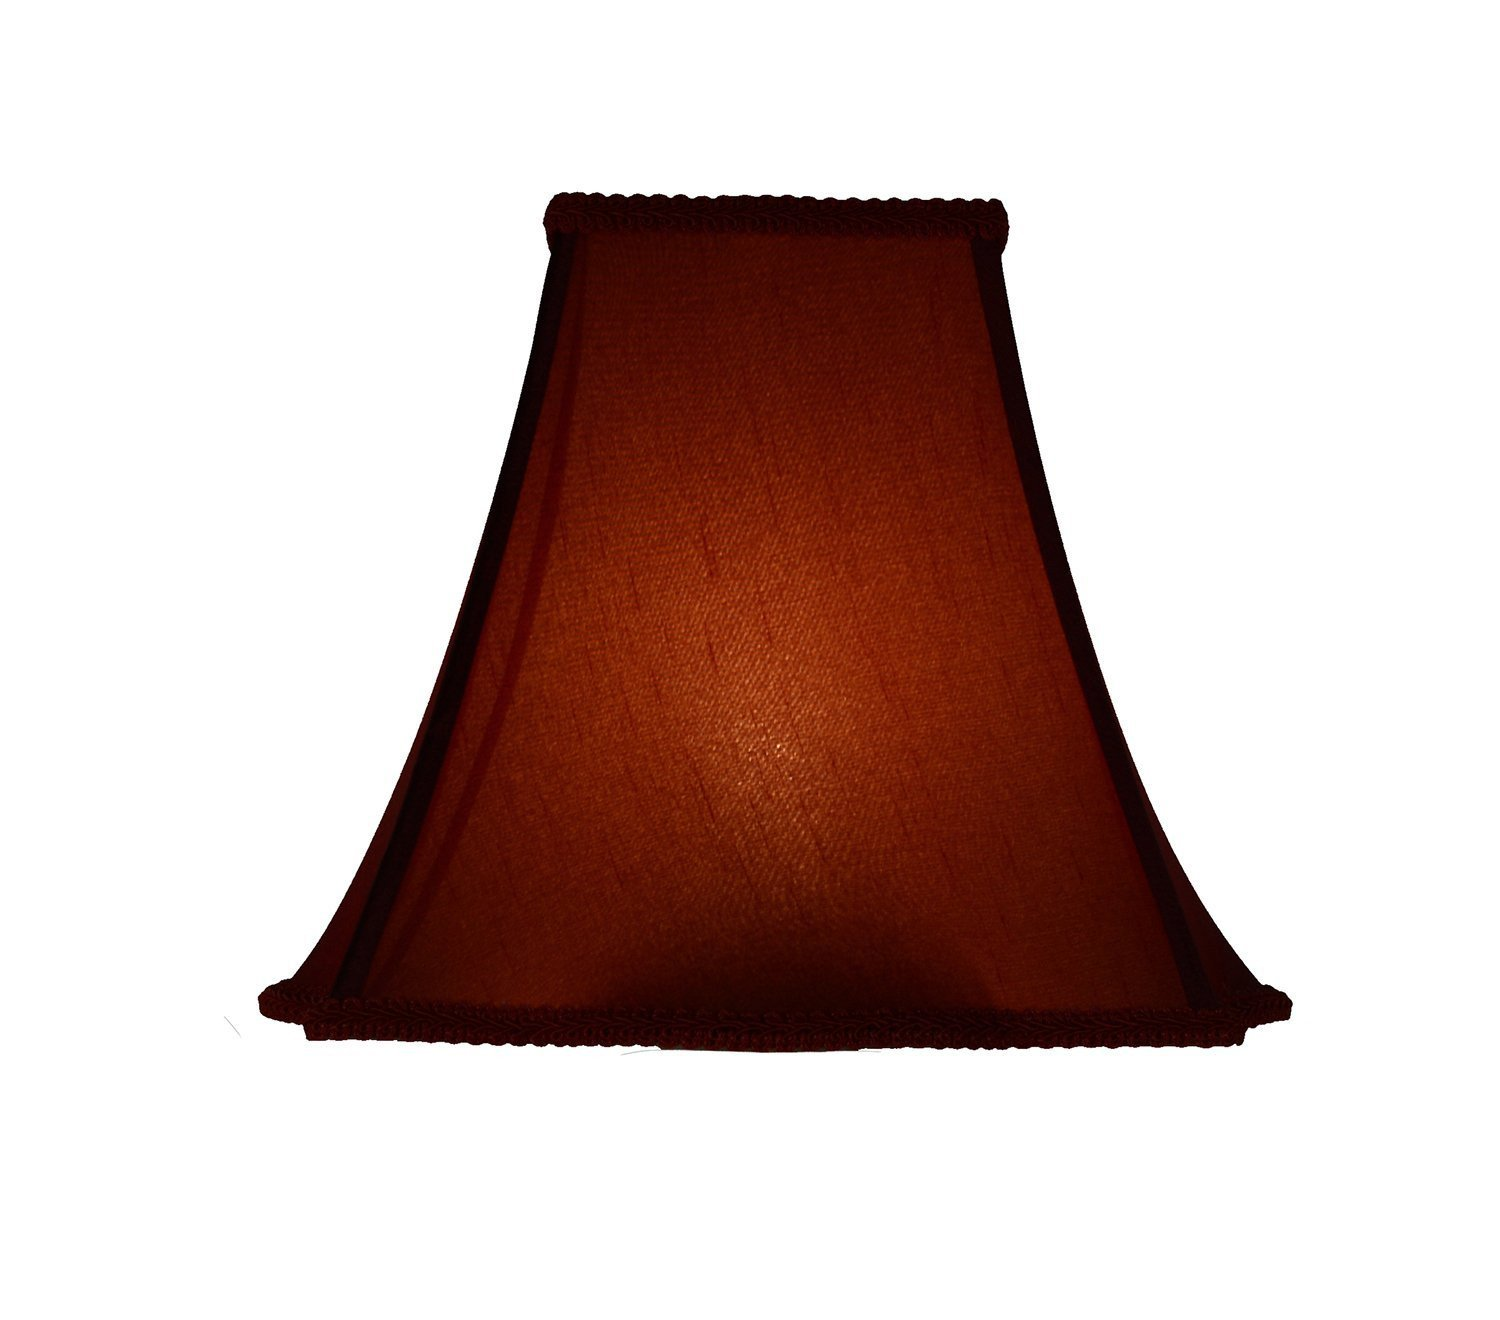 "Softback Scalloped Box Lampshade, Faux Silk, 4x10x8"", Burgundy, Spider"